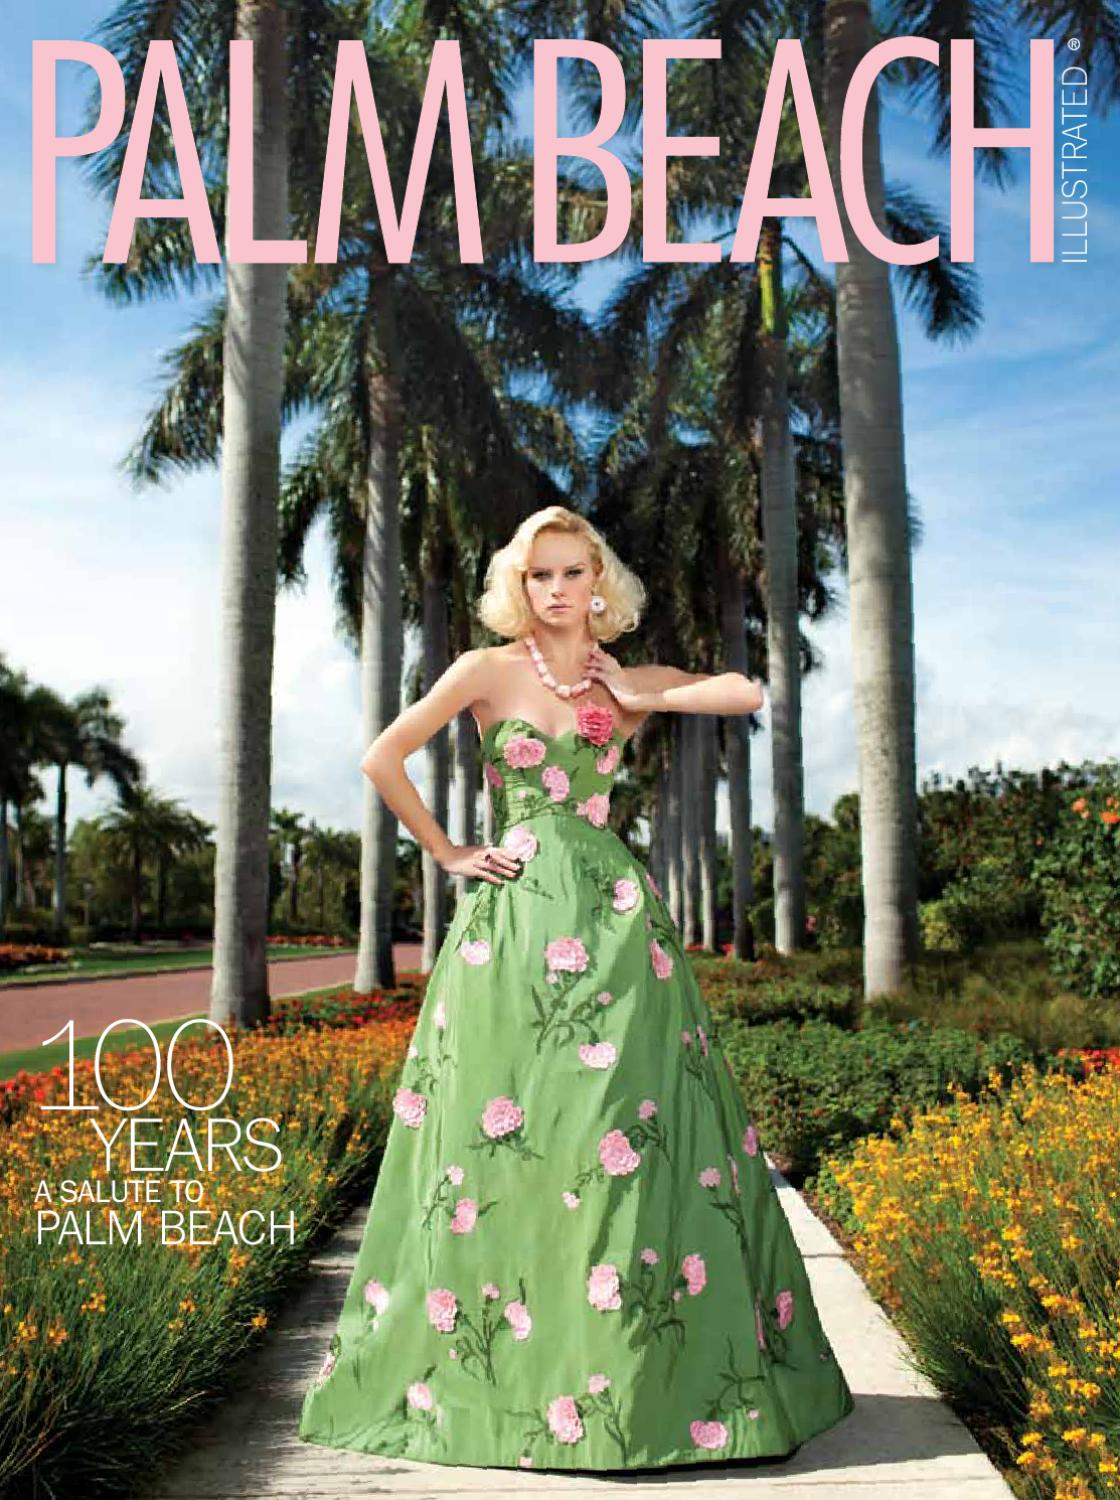 palm beach illustrated april 2011 by